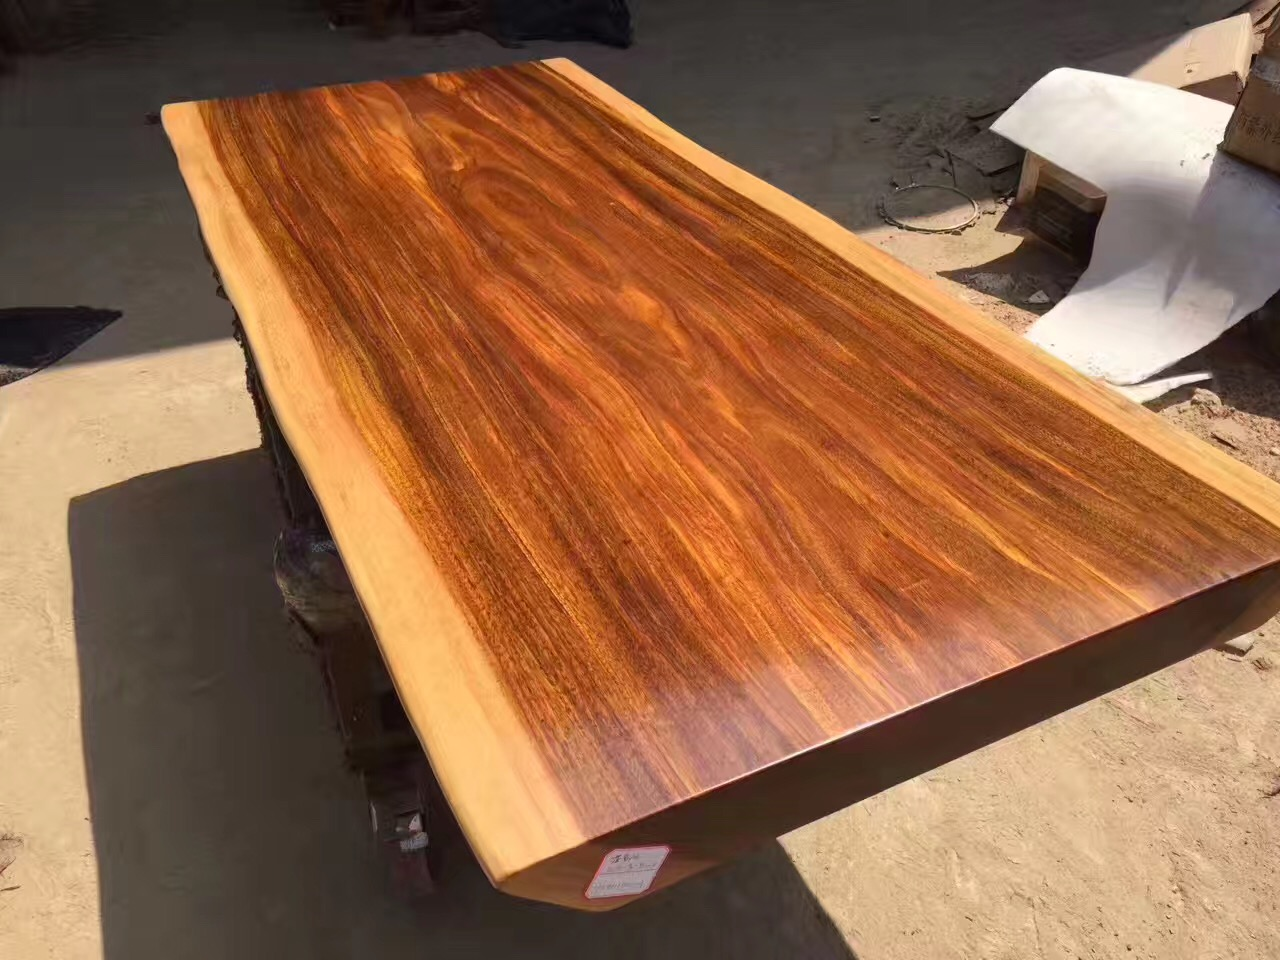 Wood Slab Desk, Wood Slab Desk Suppliers And Manufacturers At Alibaba.com